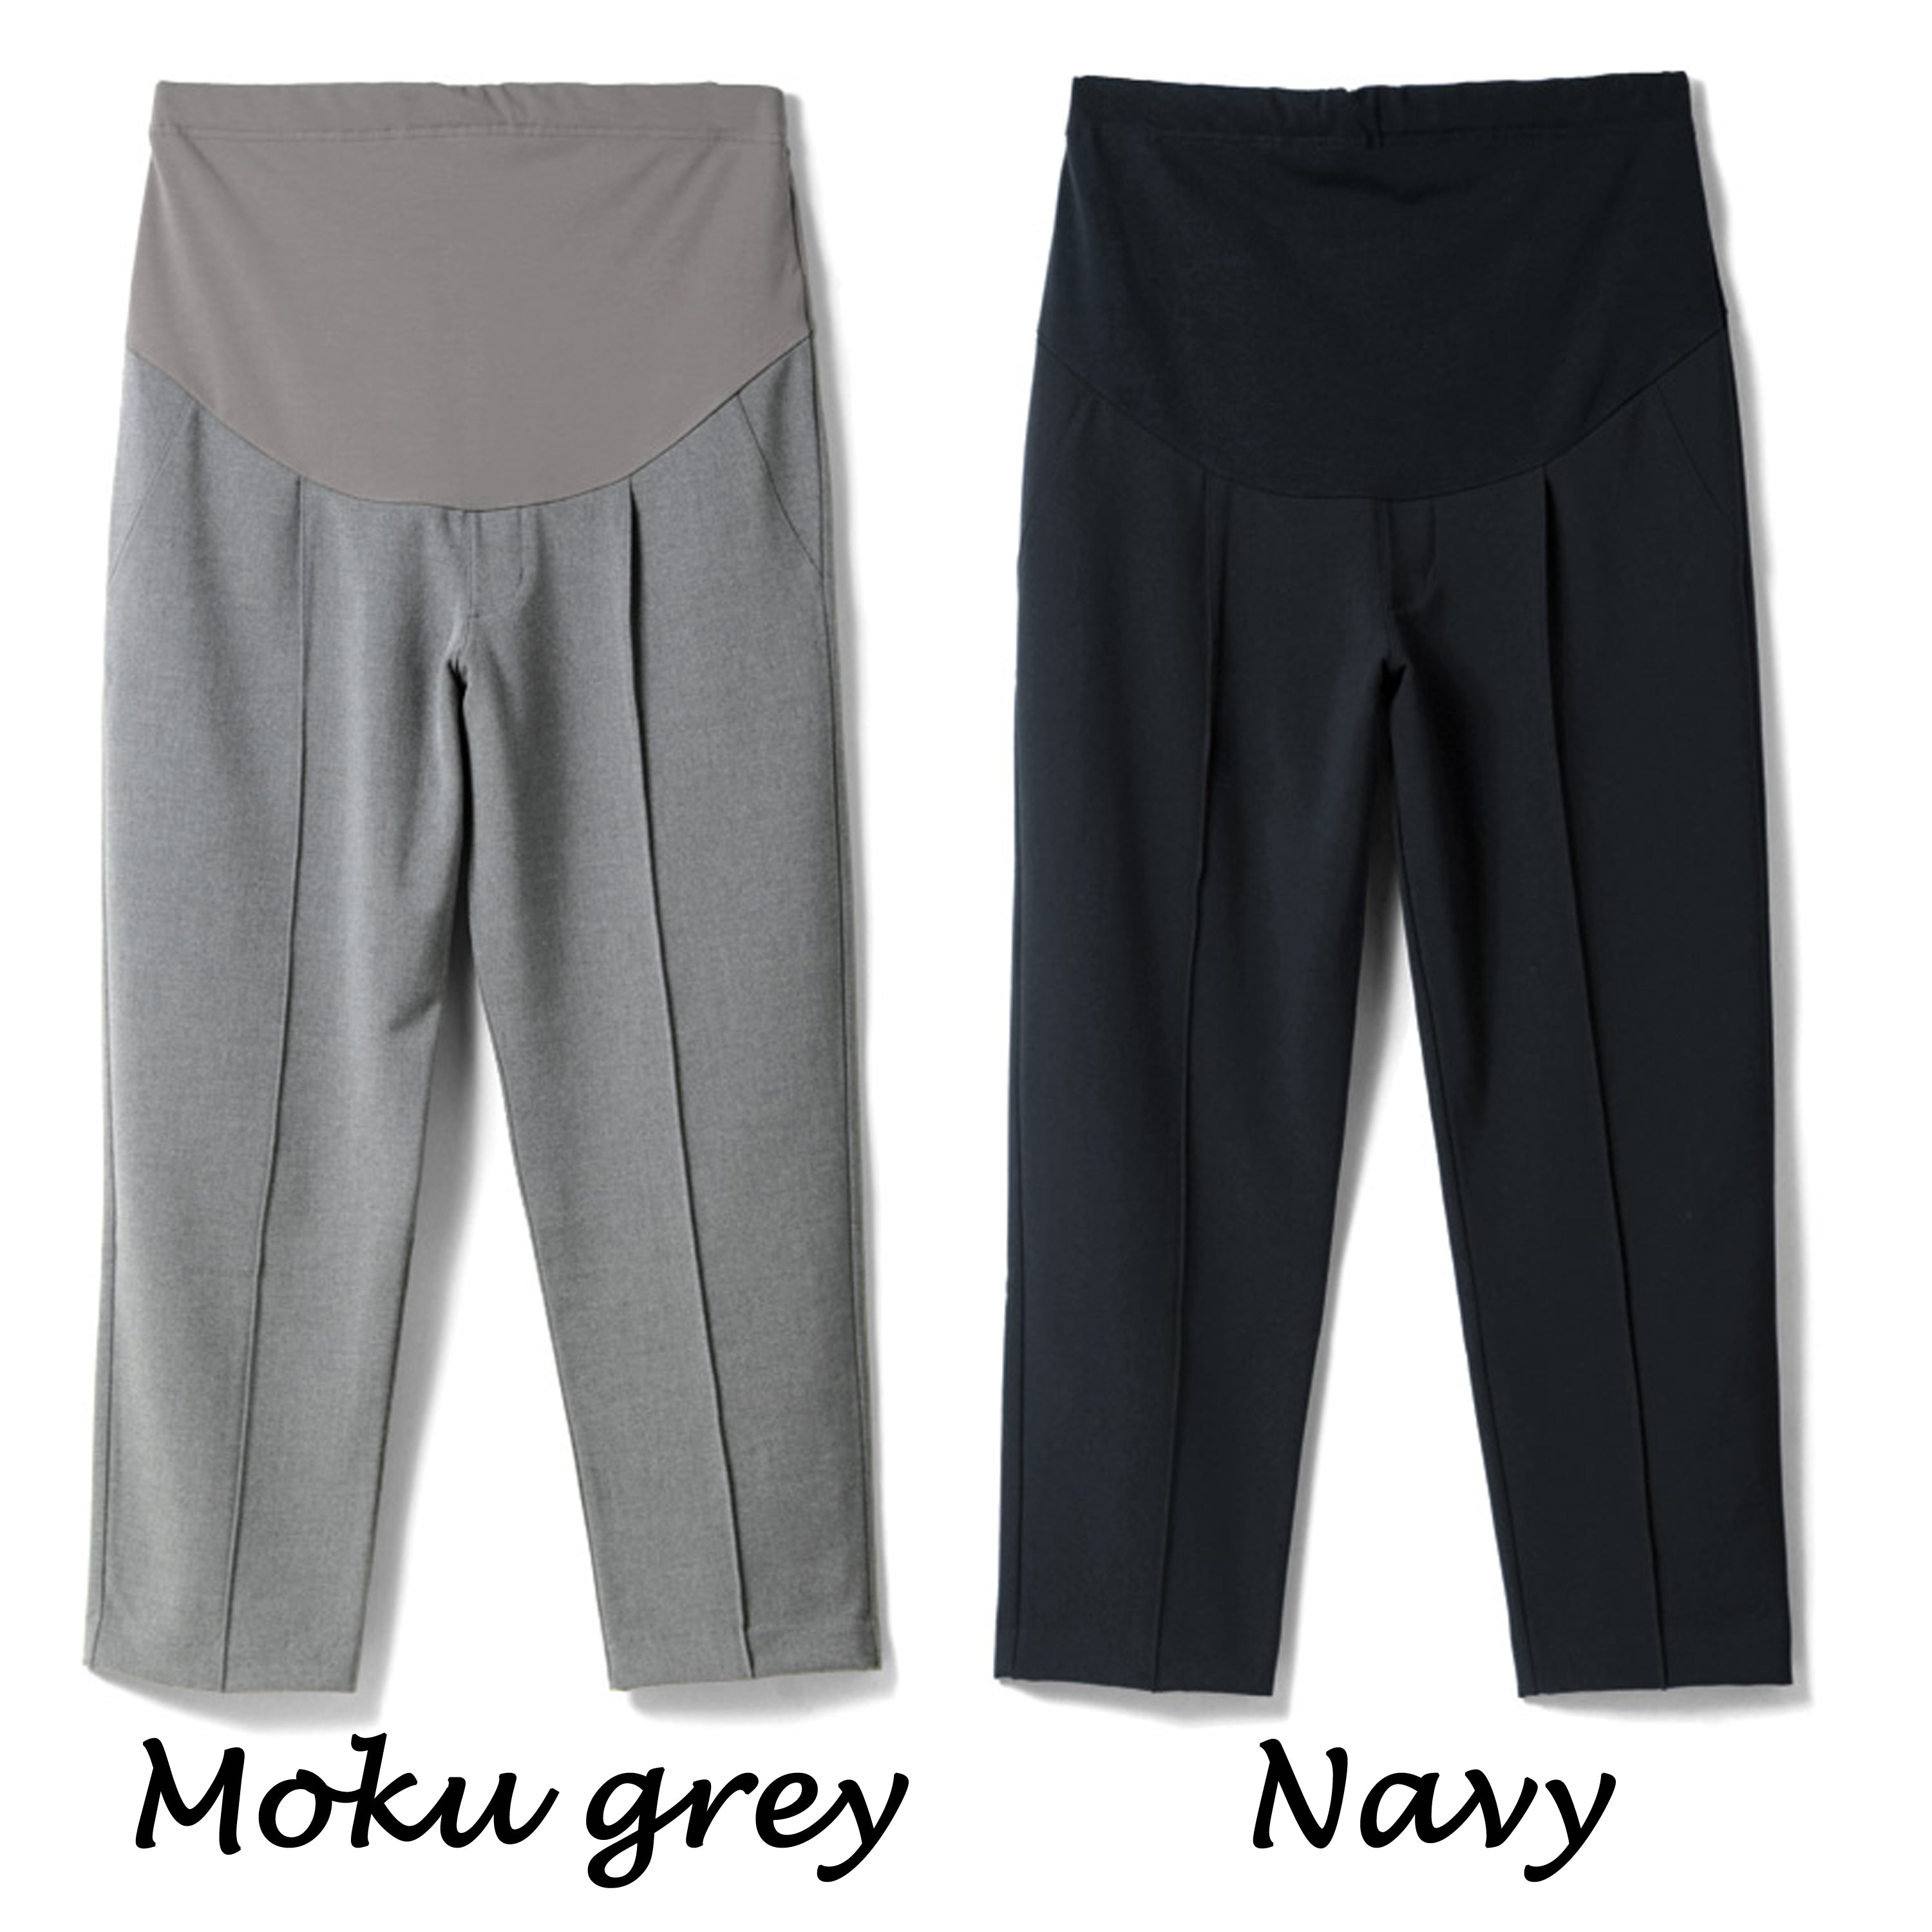 Maternity and Post-Partum Classic Warm Pants